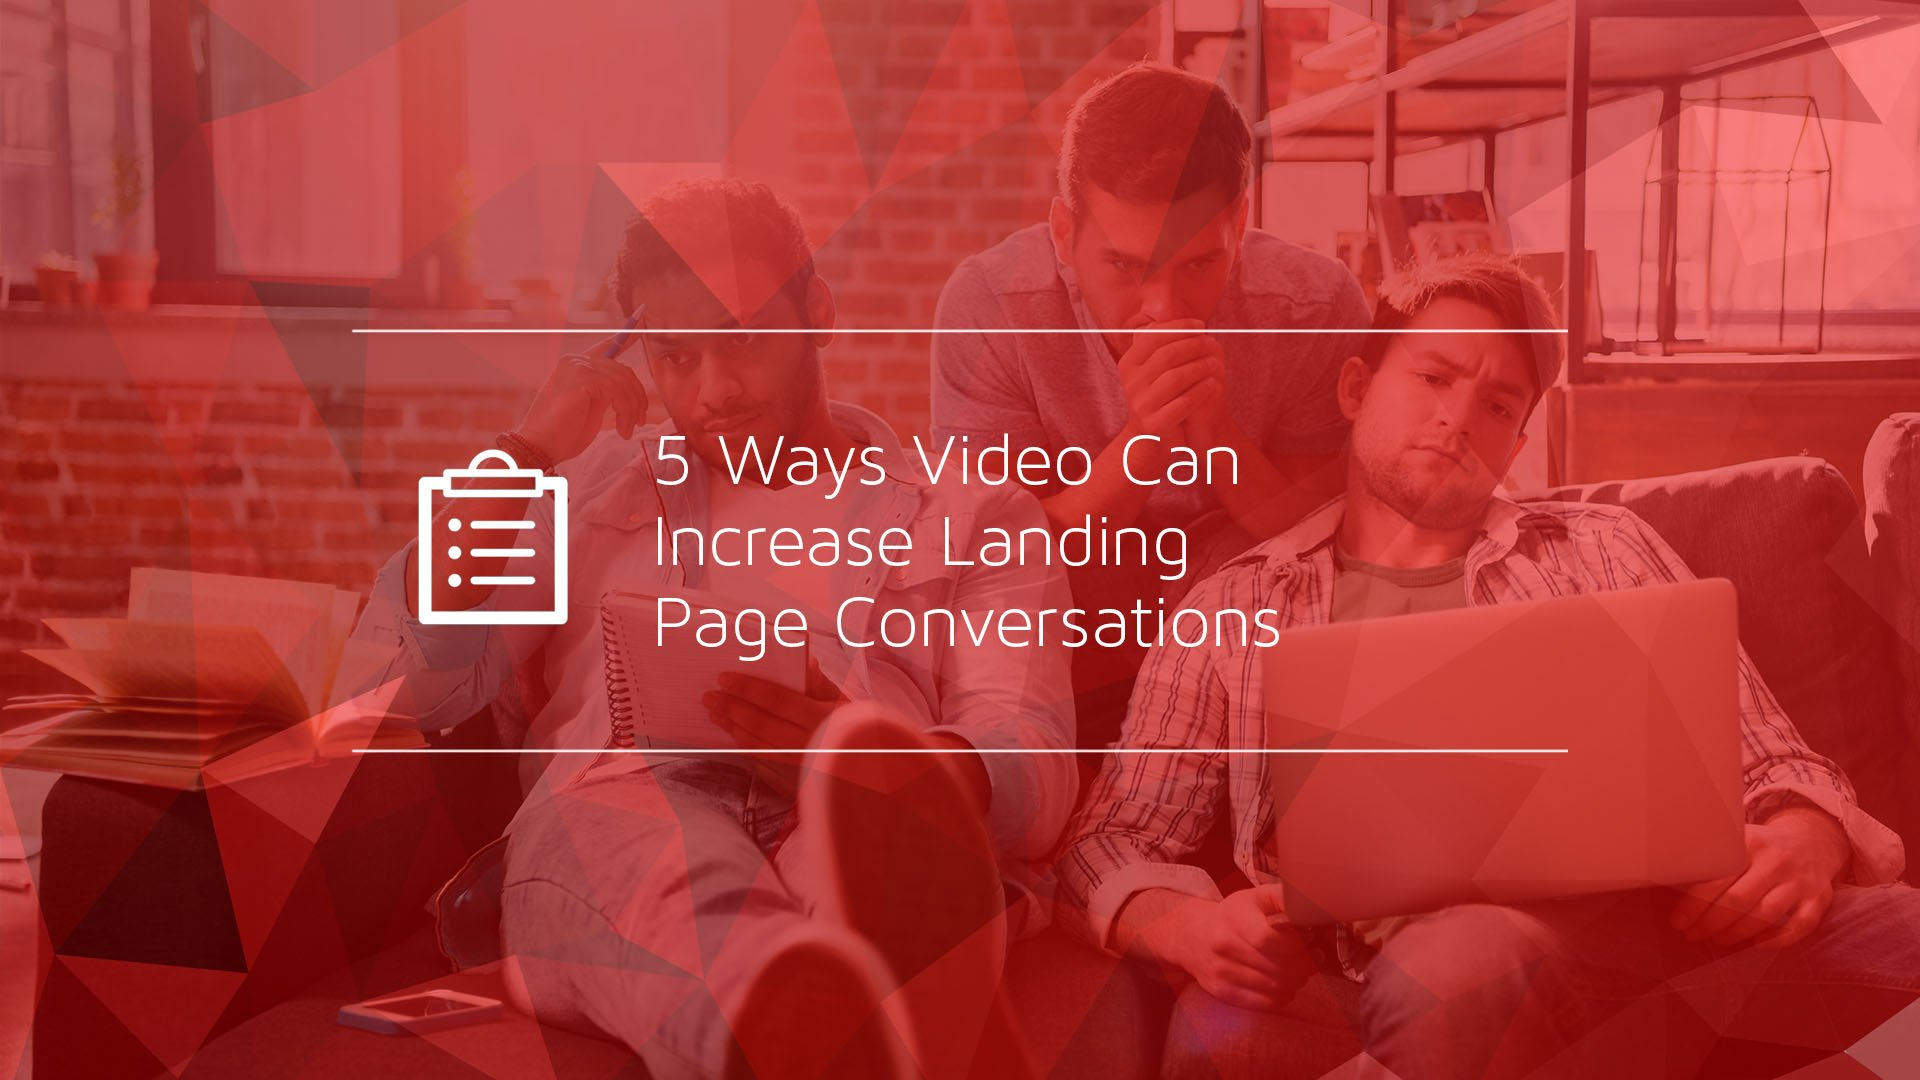 5 Ways Video Can Increase Landing Page Conversions.jpg